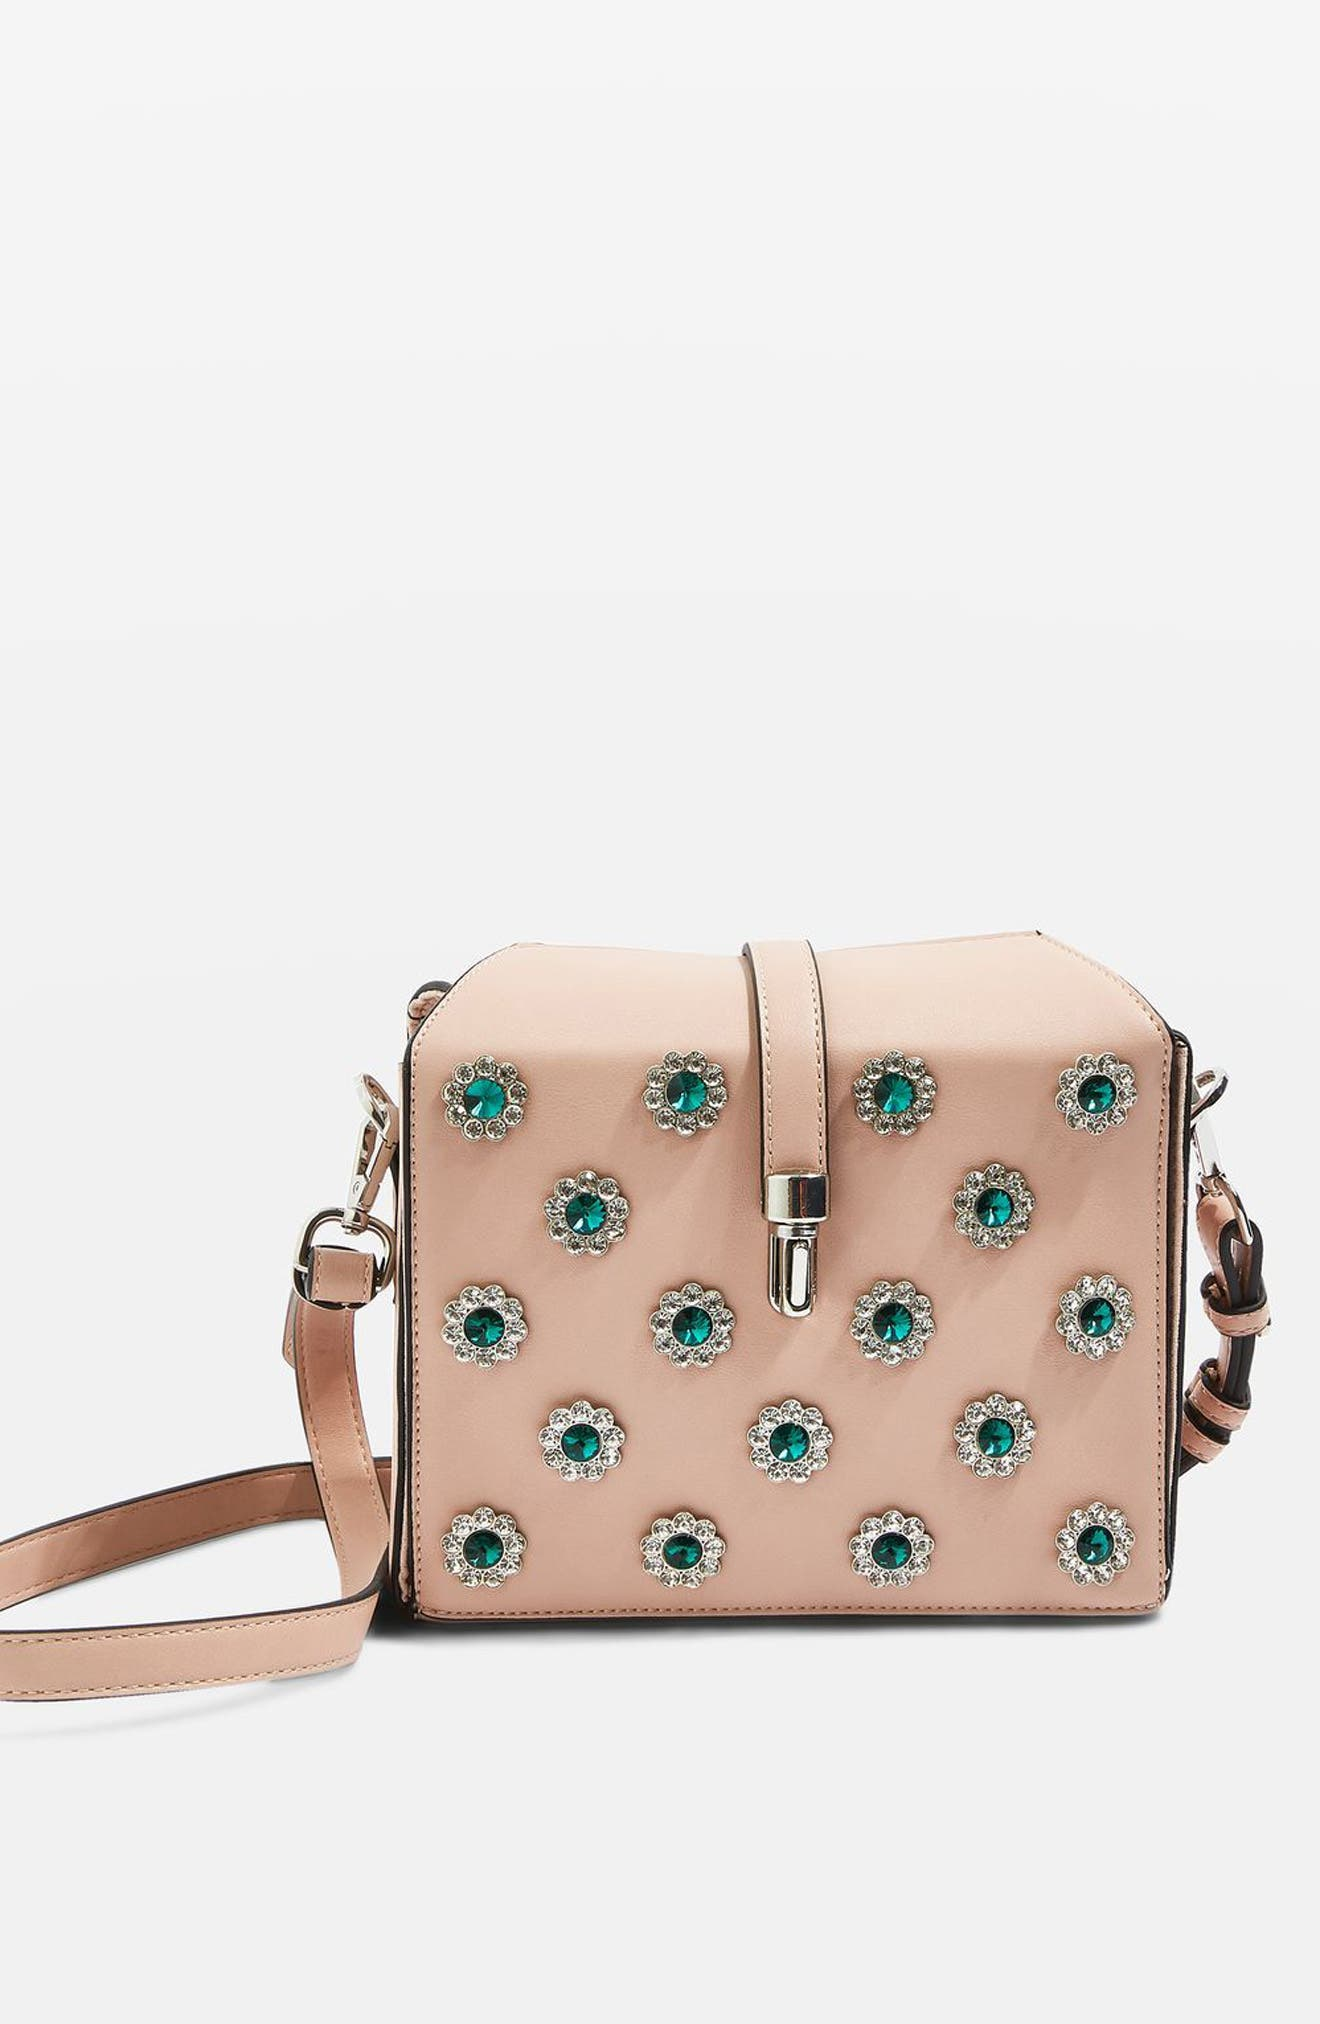 TOPSHOP Bertie Embellished Boxy Crossbody Bag